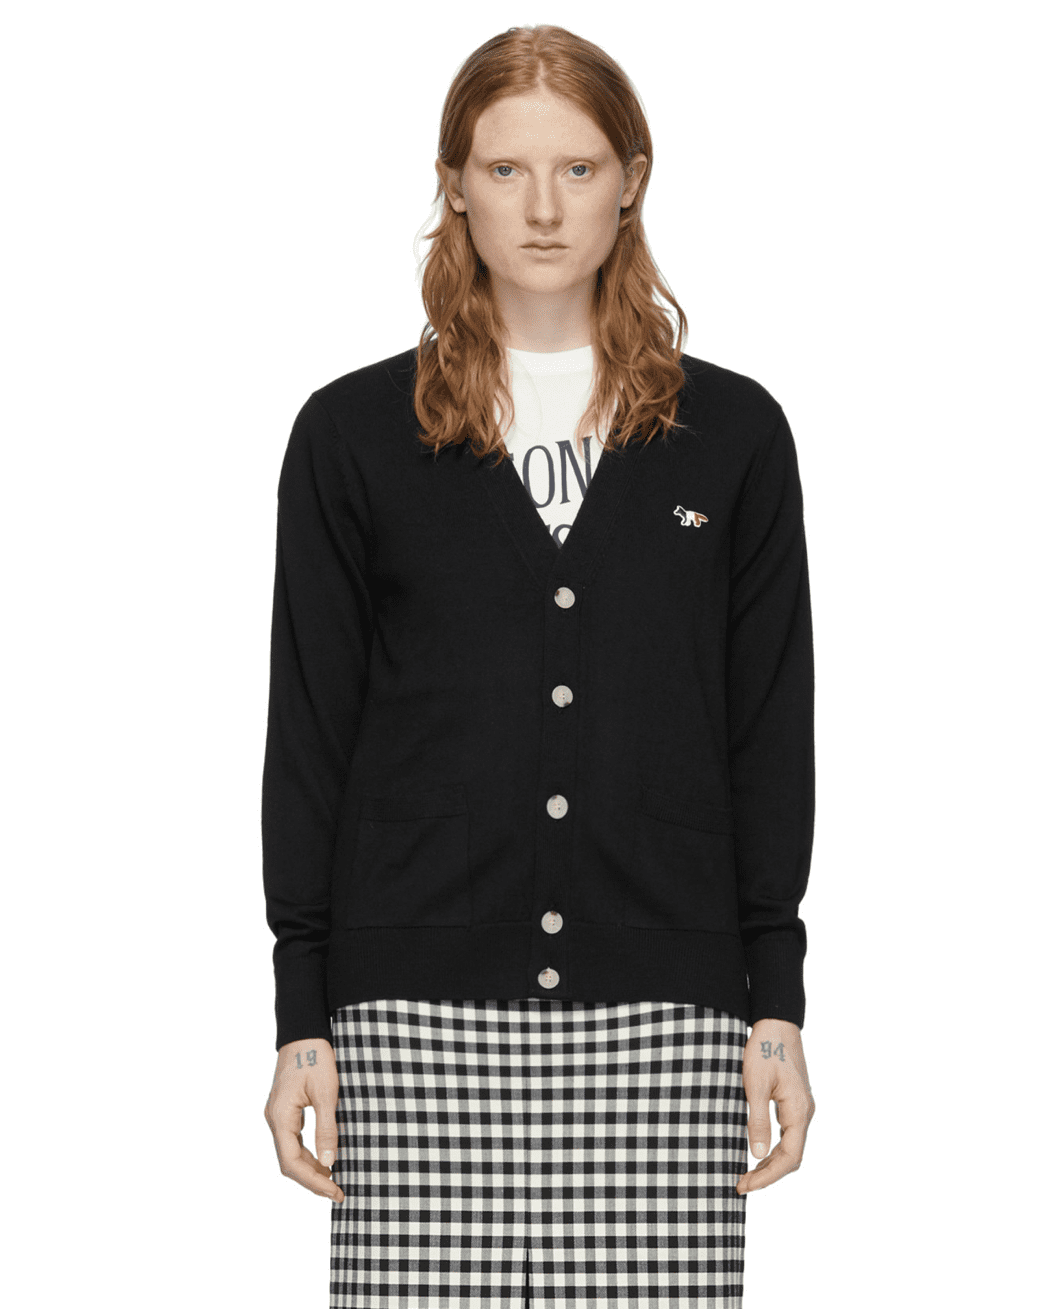 Ssense: Up to 80% off sale styles! Further Markdowns!